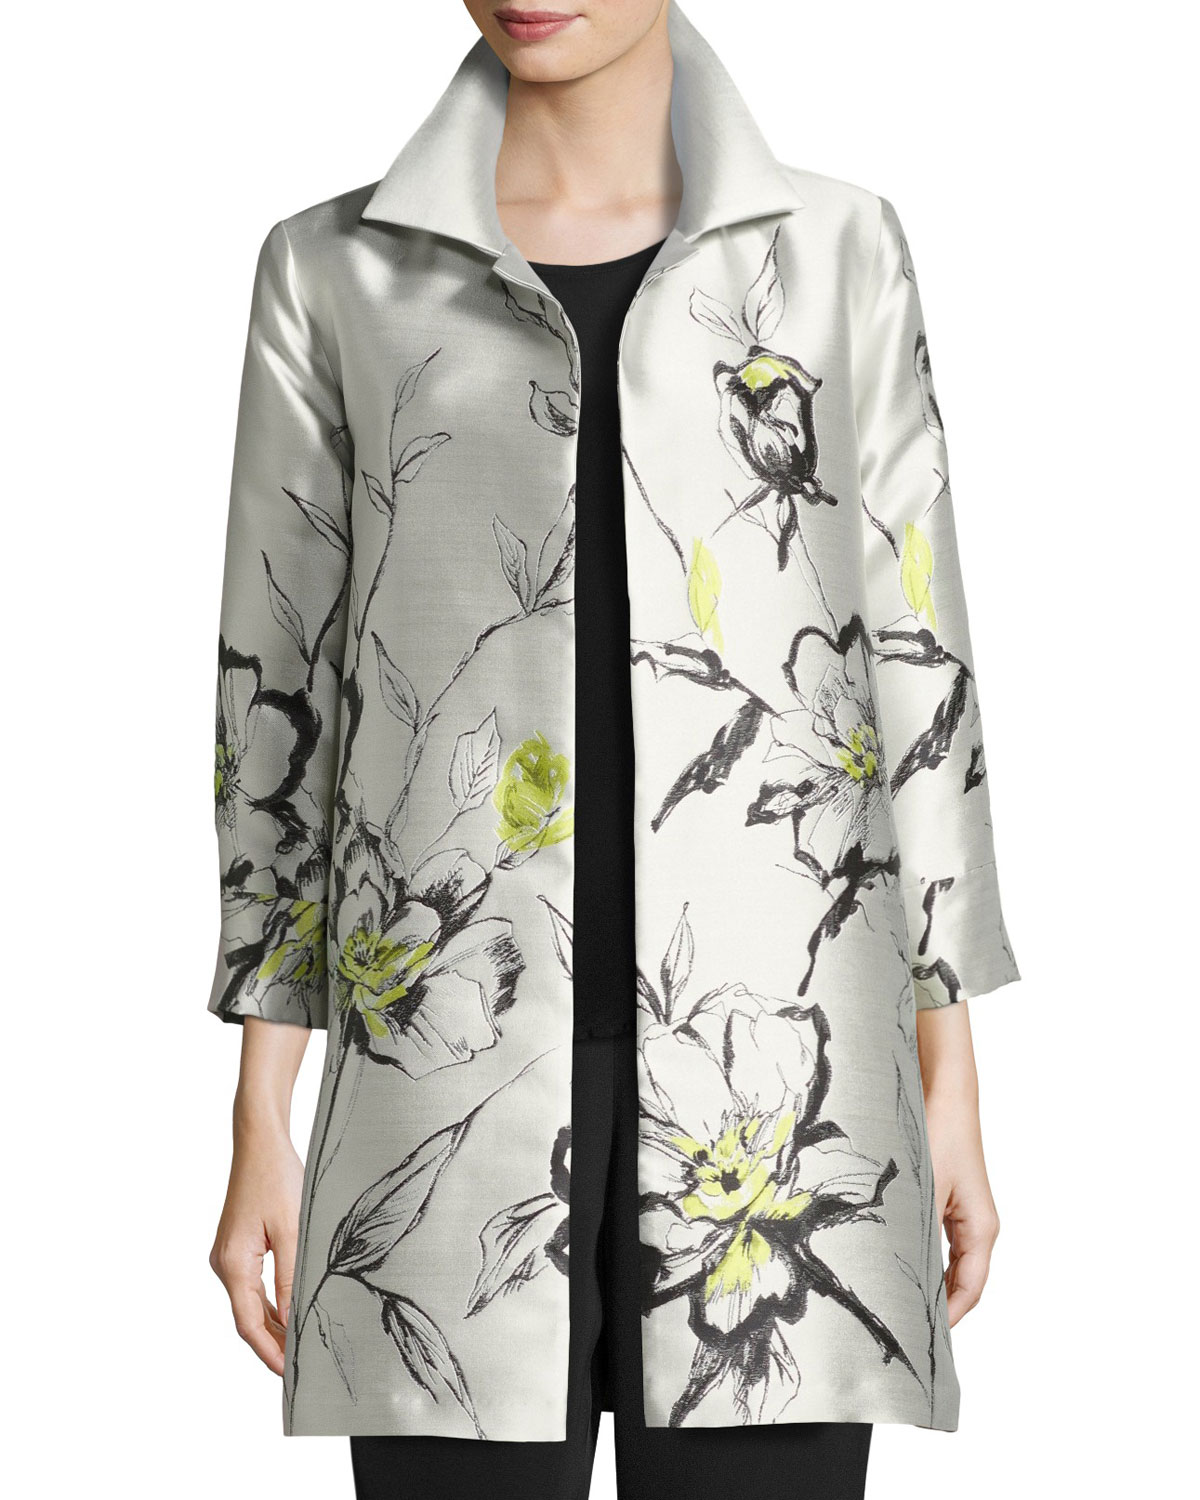 Texas Tech Classic Elegance Ladies Ring: Caroline Rose All-in-Bloom Jacquard Party Jacket, Light